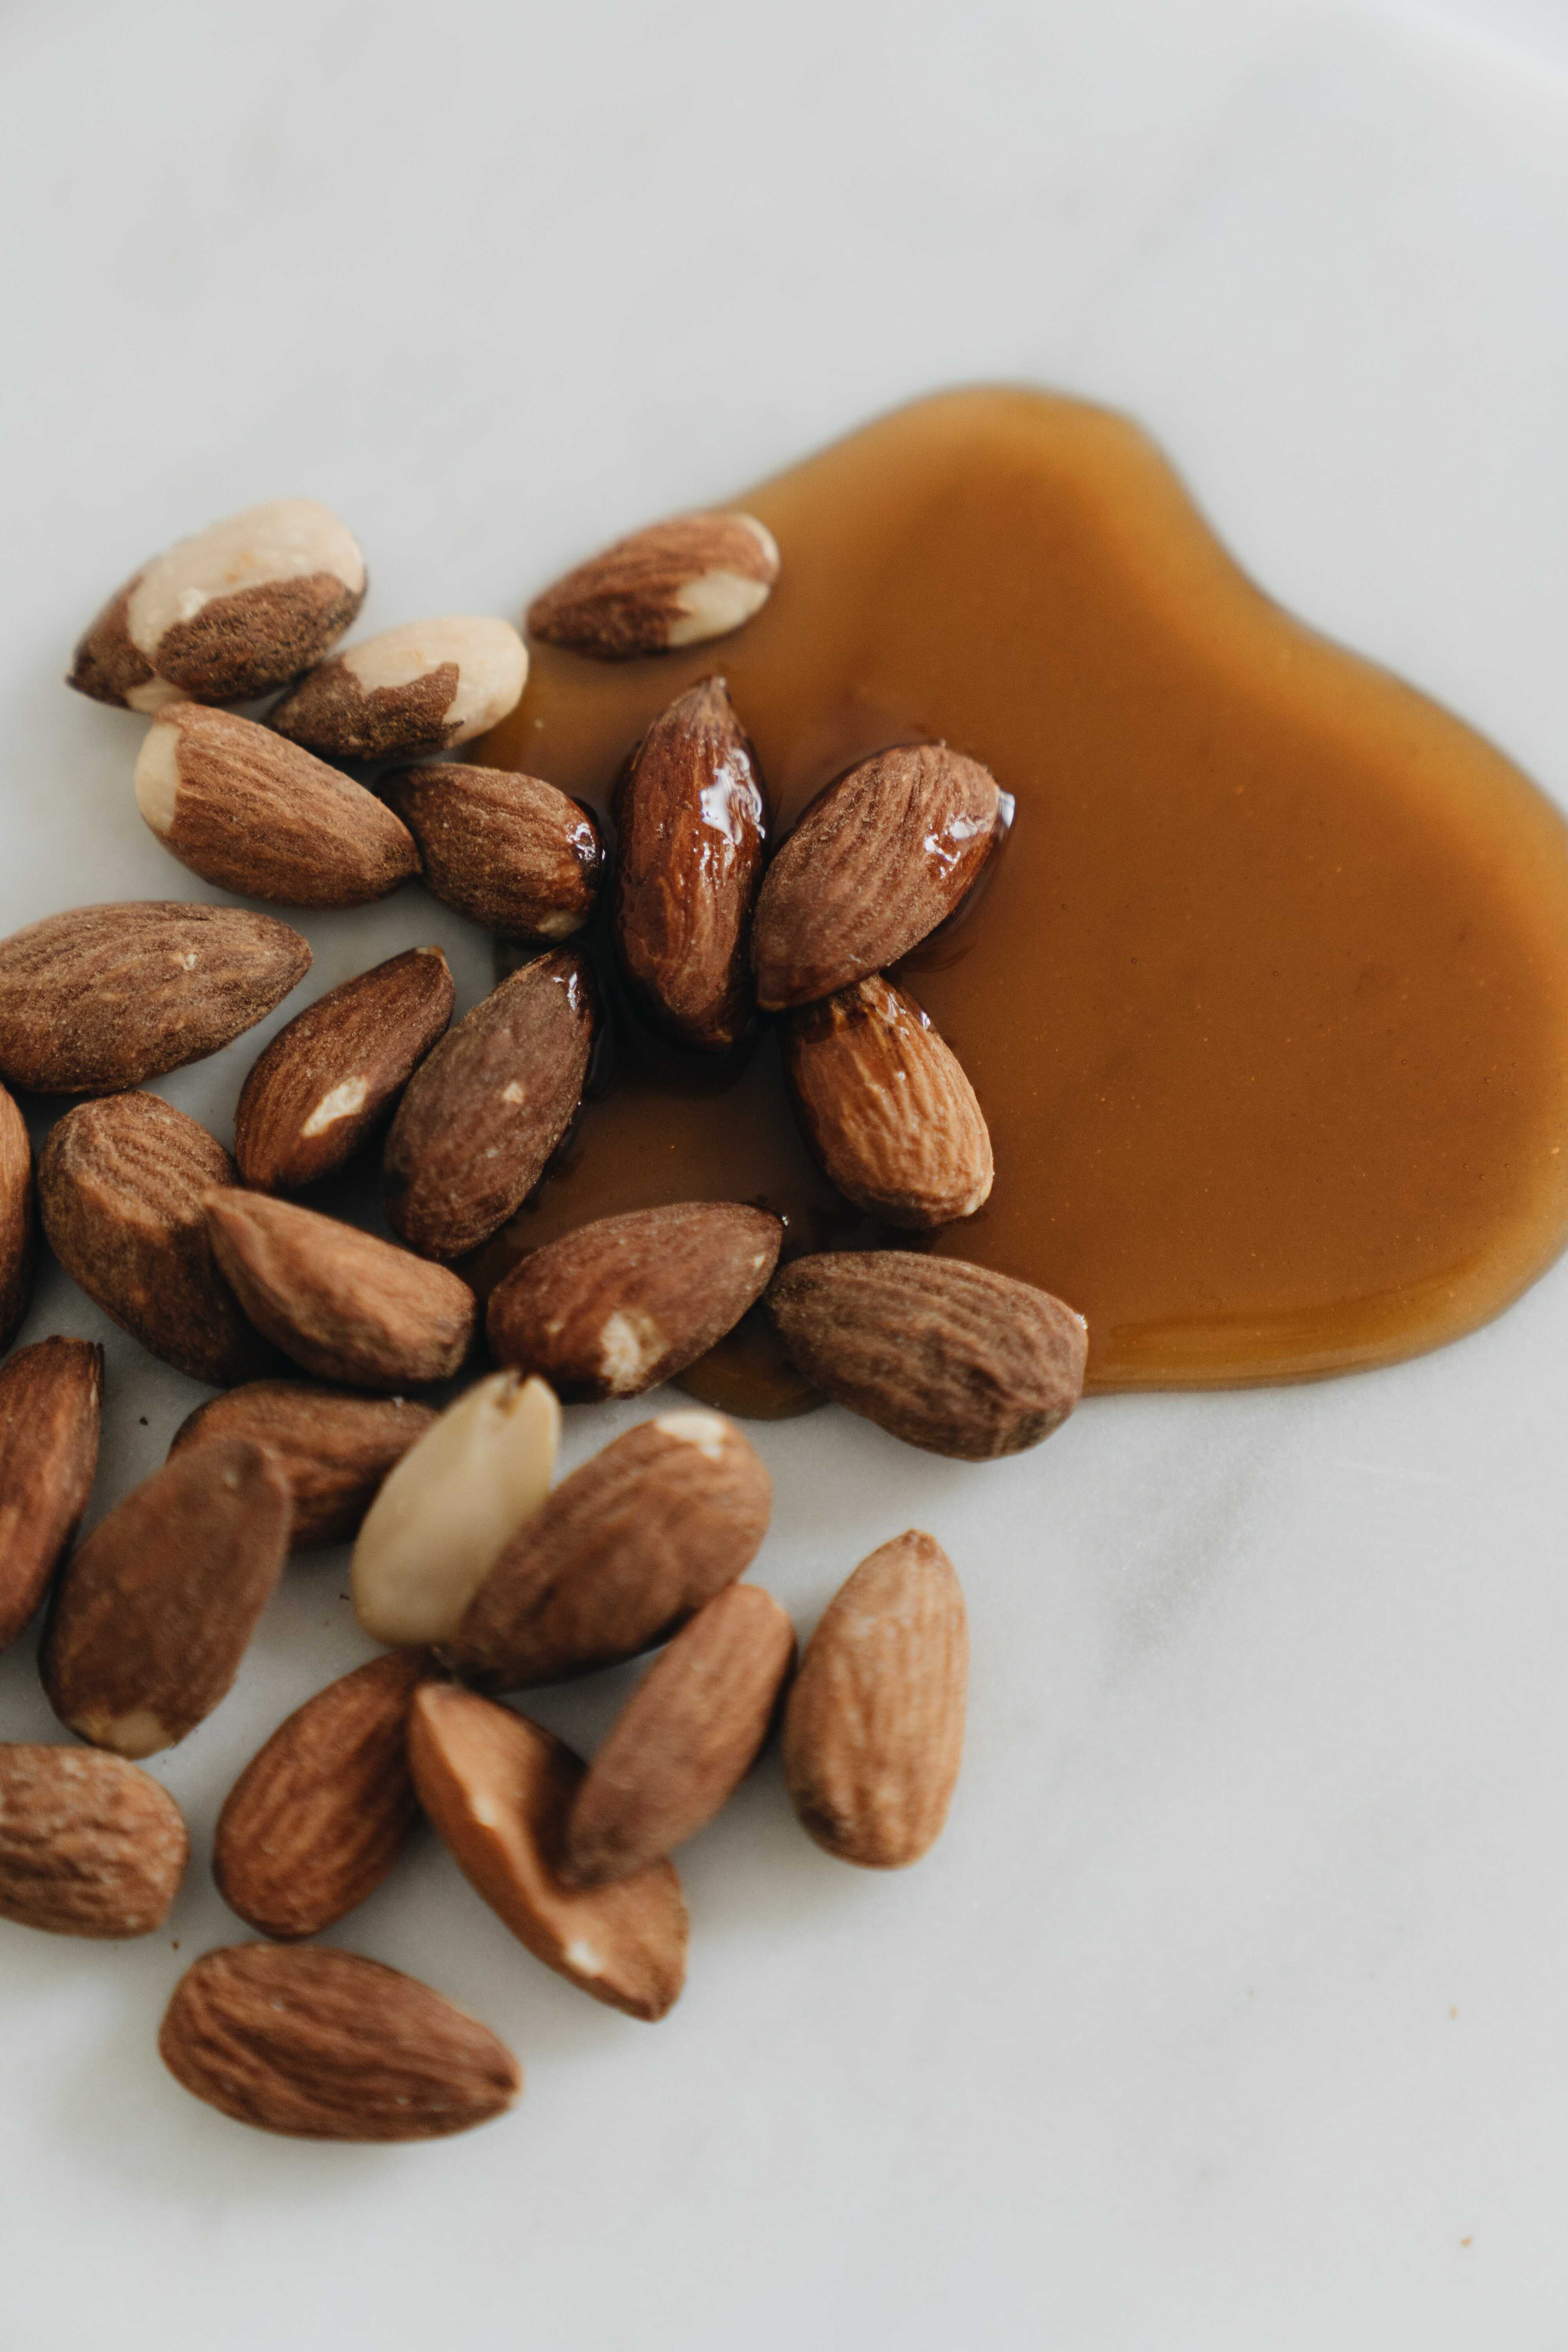 almond oil and nuts